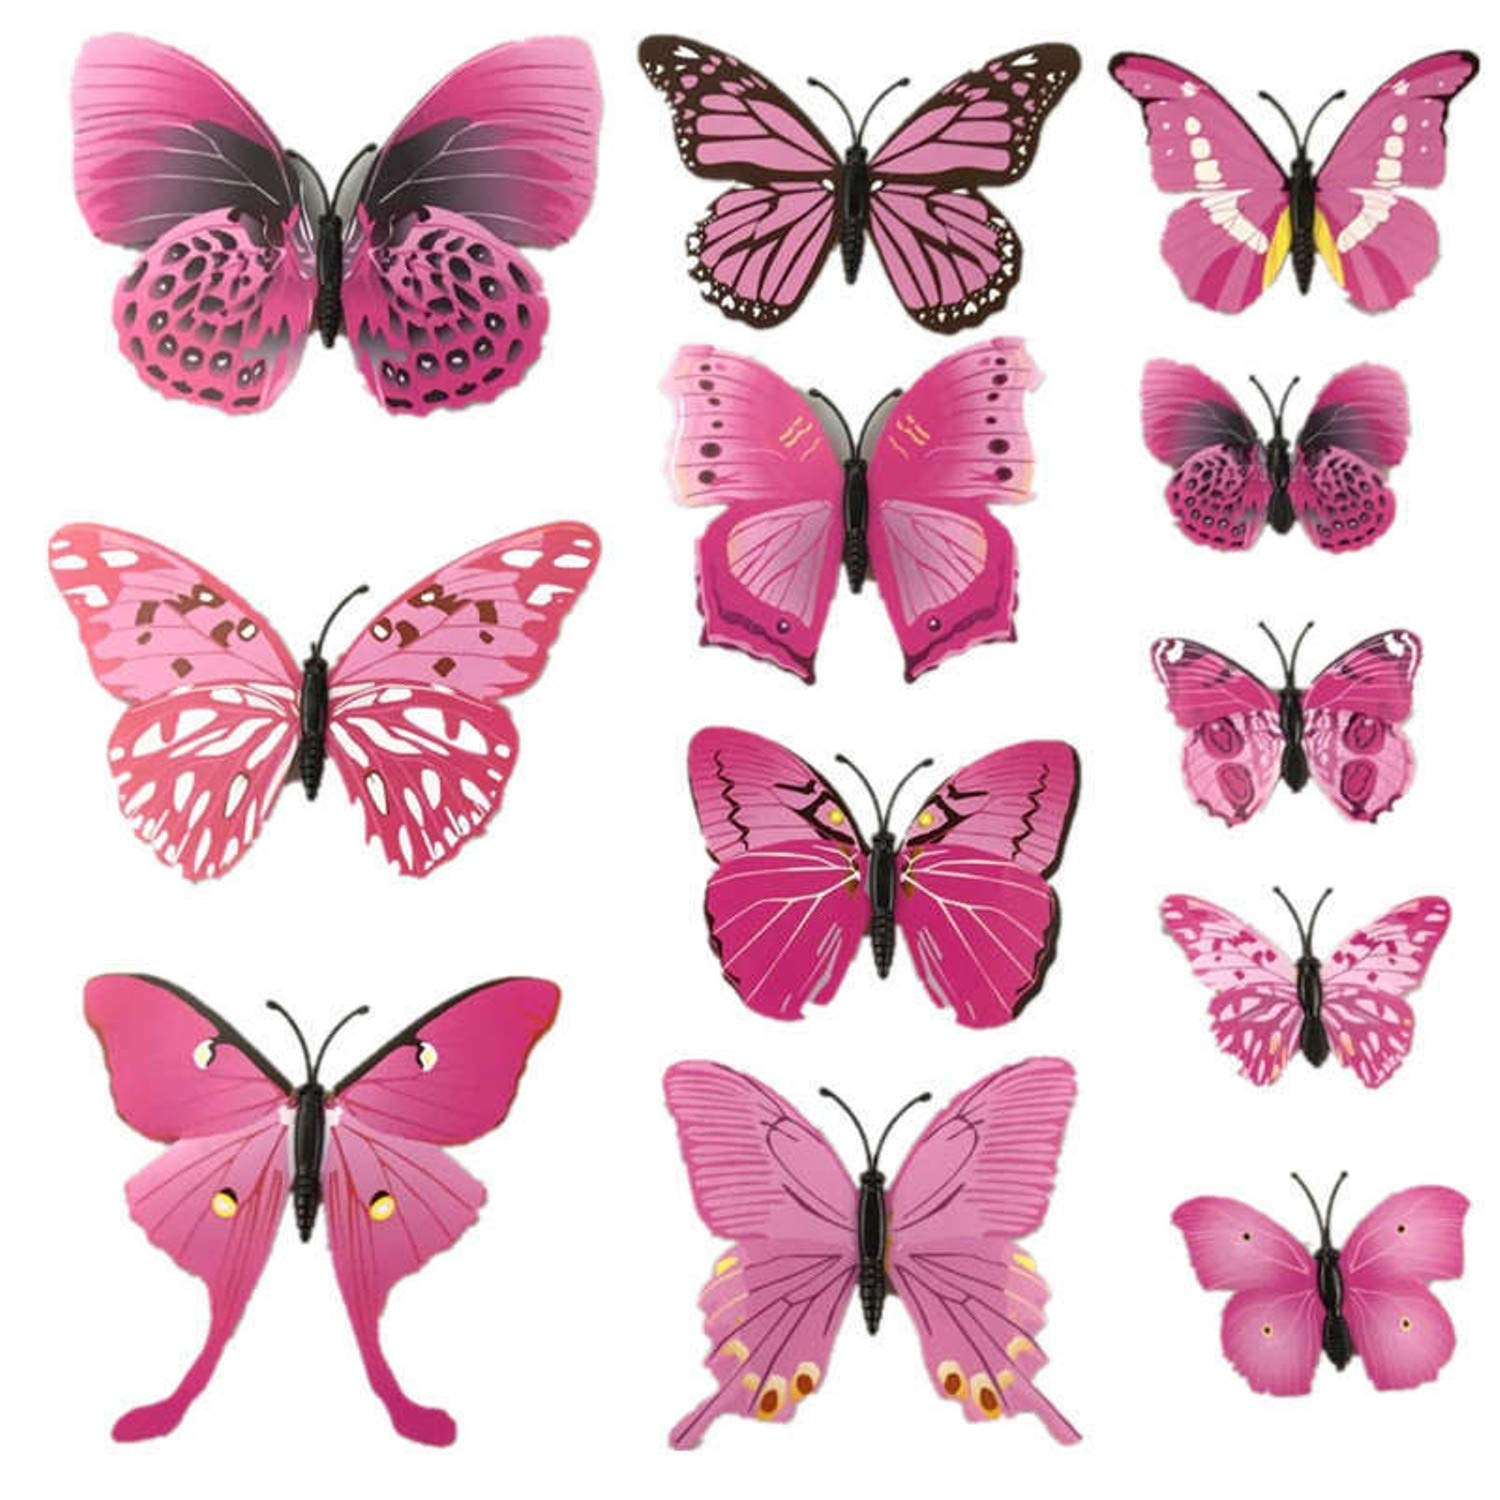 Amazon.com: Chitop (12 Pcs/Lot PVC 3D Magnet Butterfly Wall Stickers - Butterflies Decors for Wedding Party - Home Kitchen Fridge Decoration (Colorful ...